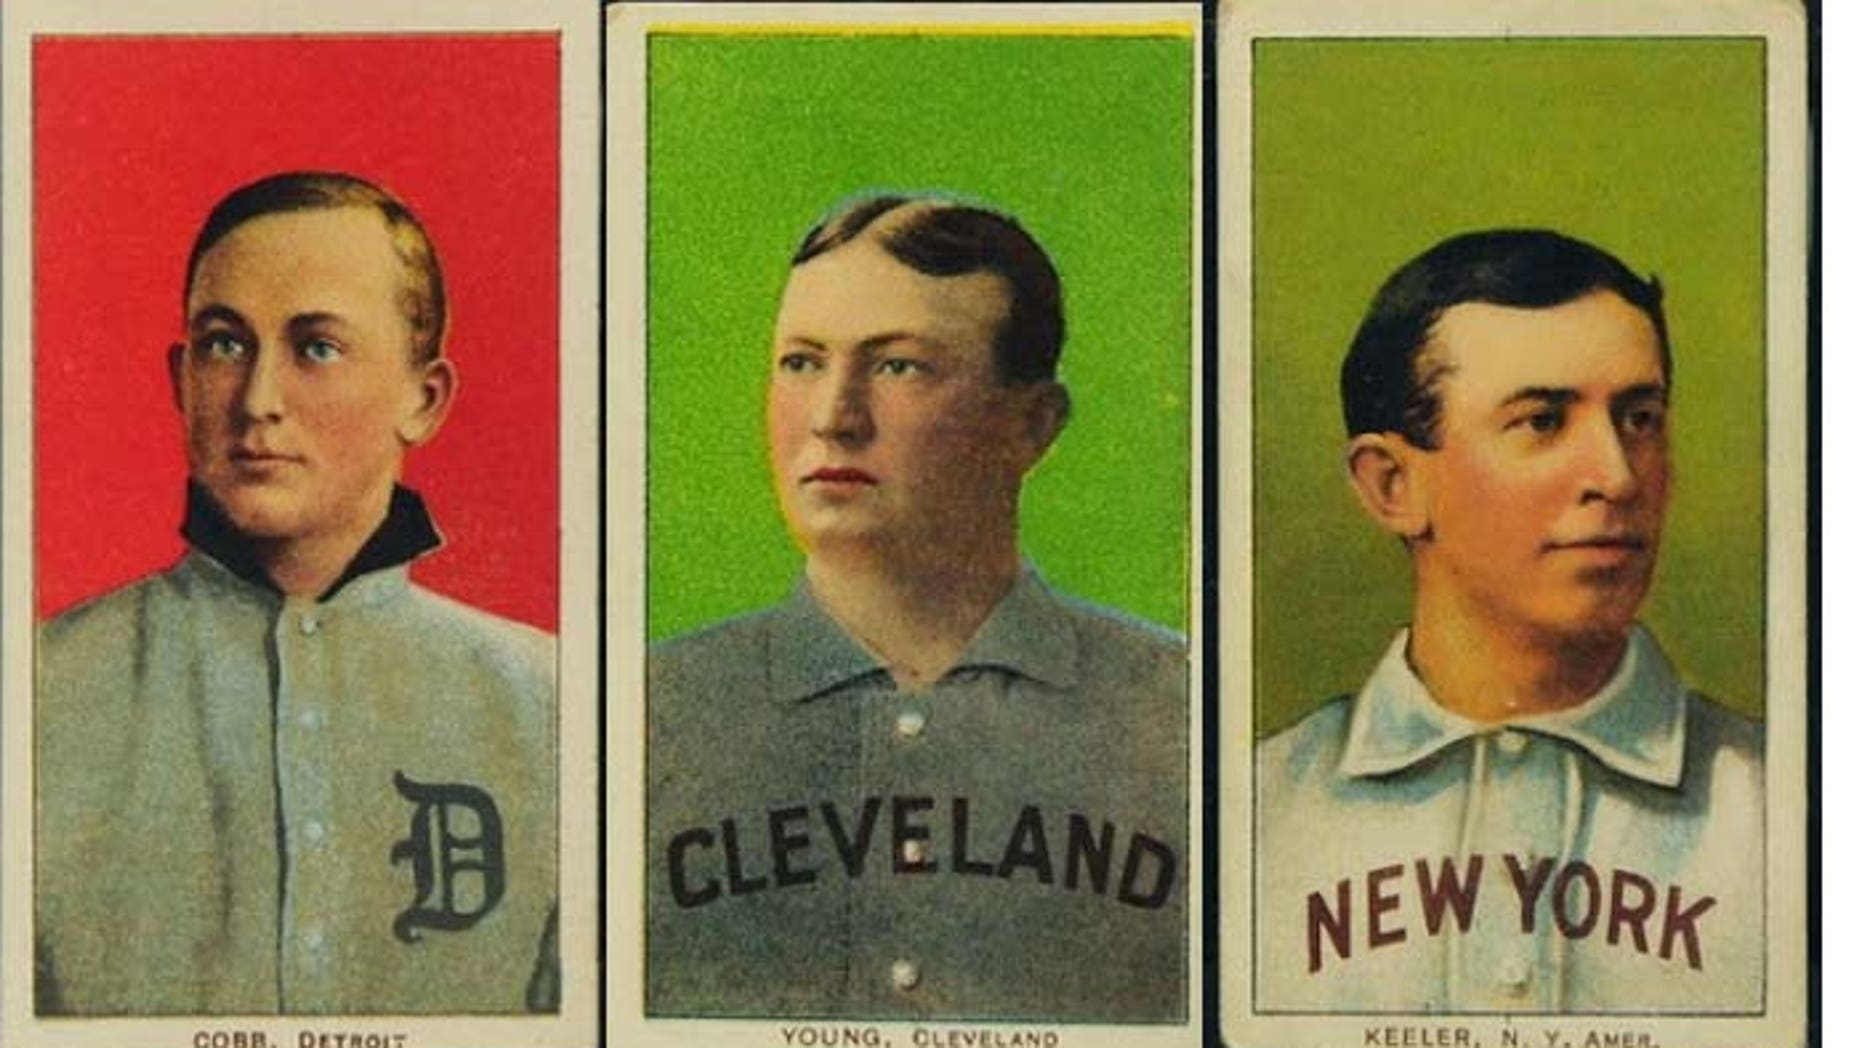 """Among the early 20th Century baseball cards sold in the first phase of the """"Portland trove"""" auction were these Hall of Famers, from left: Ty Cobb, Cy Young and Willie Keeler. (Saco River Auctions)"""